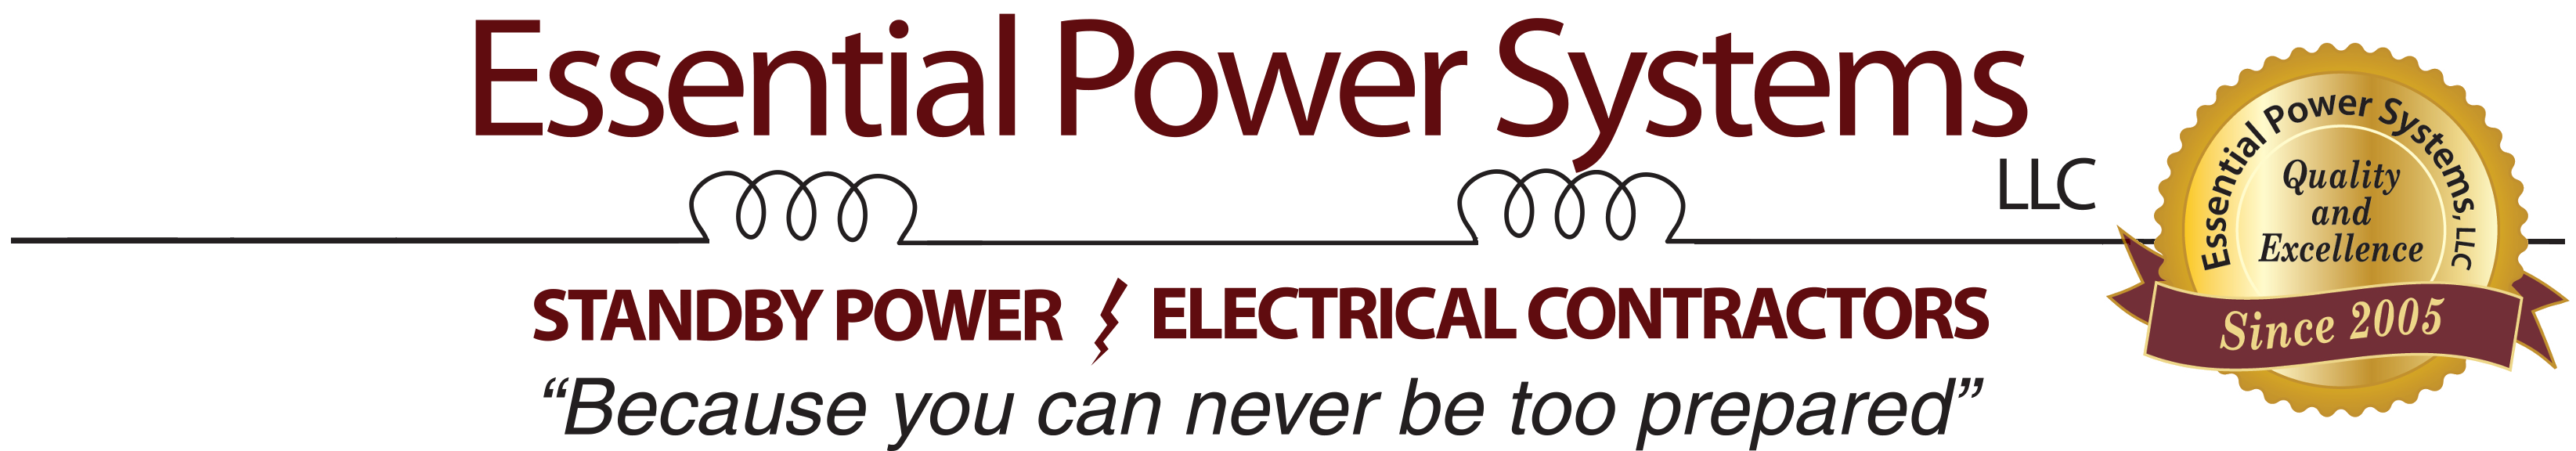 Essential Power Systems, LLC